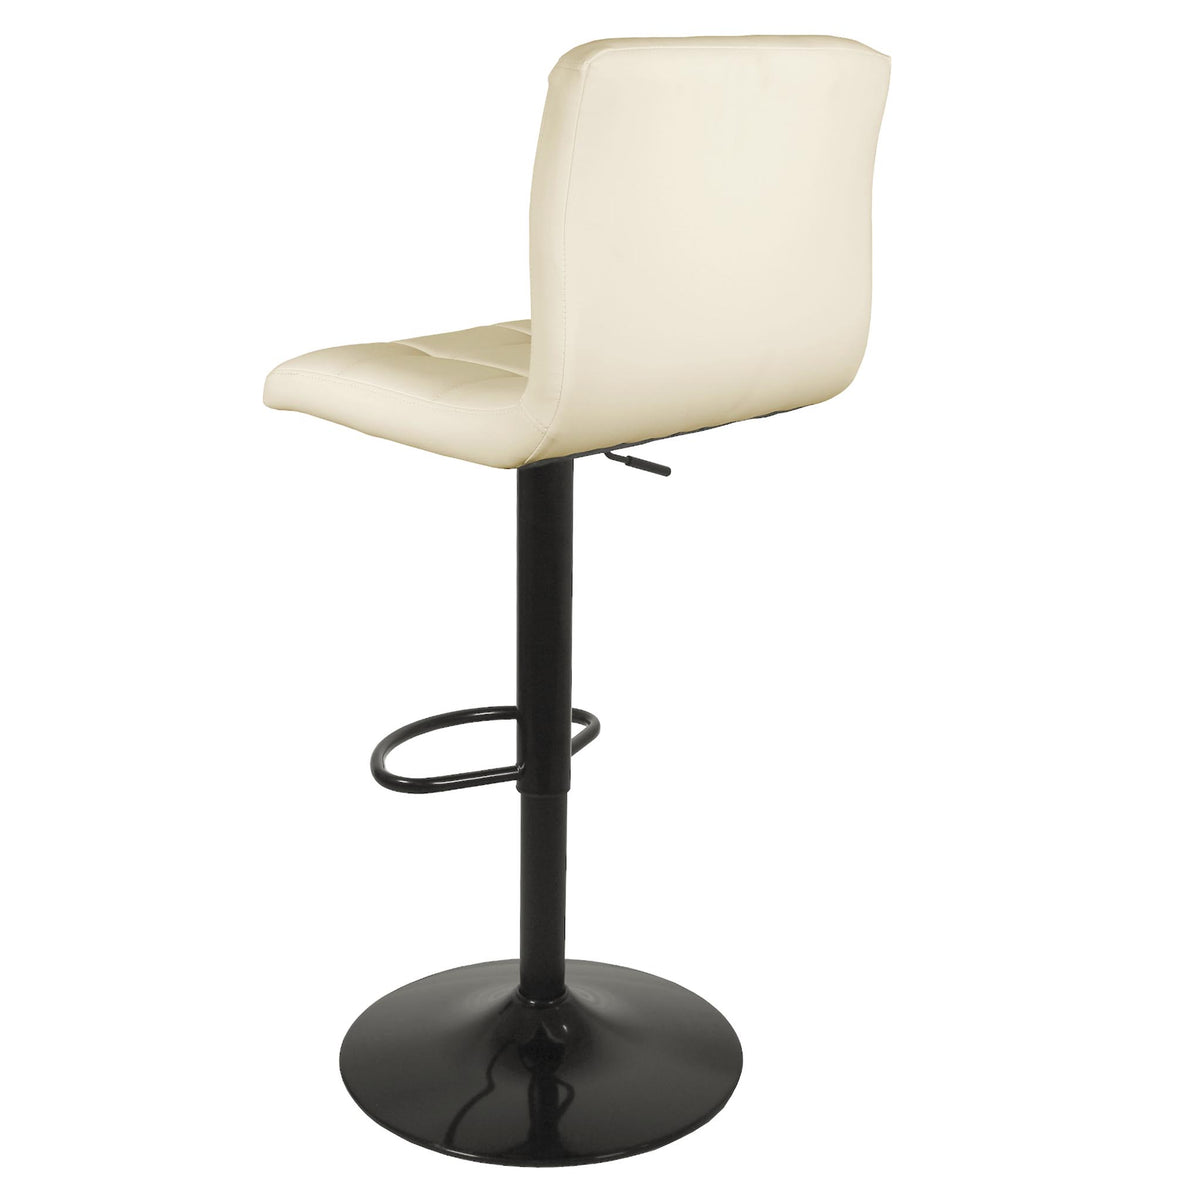 Back view of the Vanilla Cream Elton Adjustable Breakfast Bar Stool from Roseland Furniture